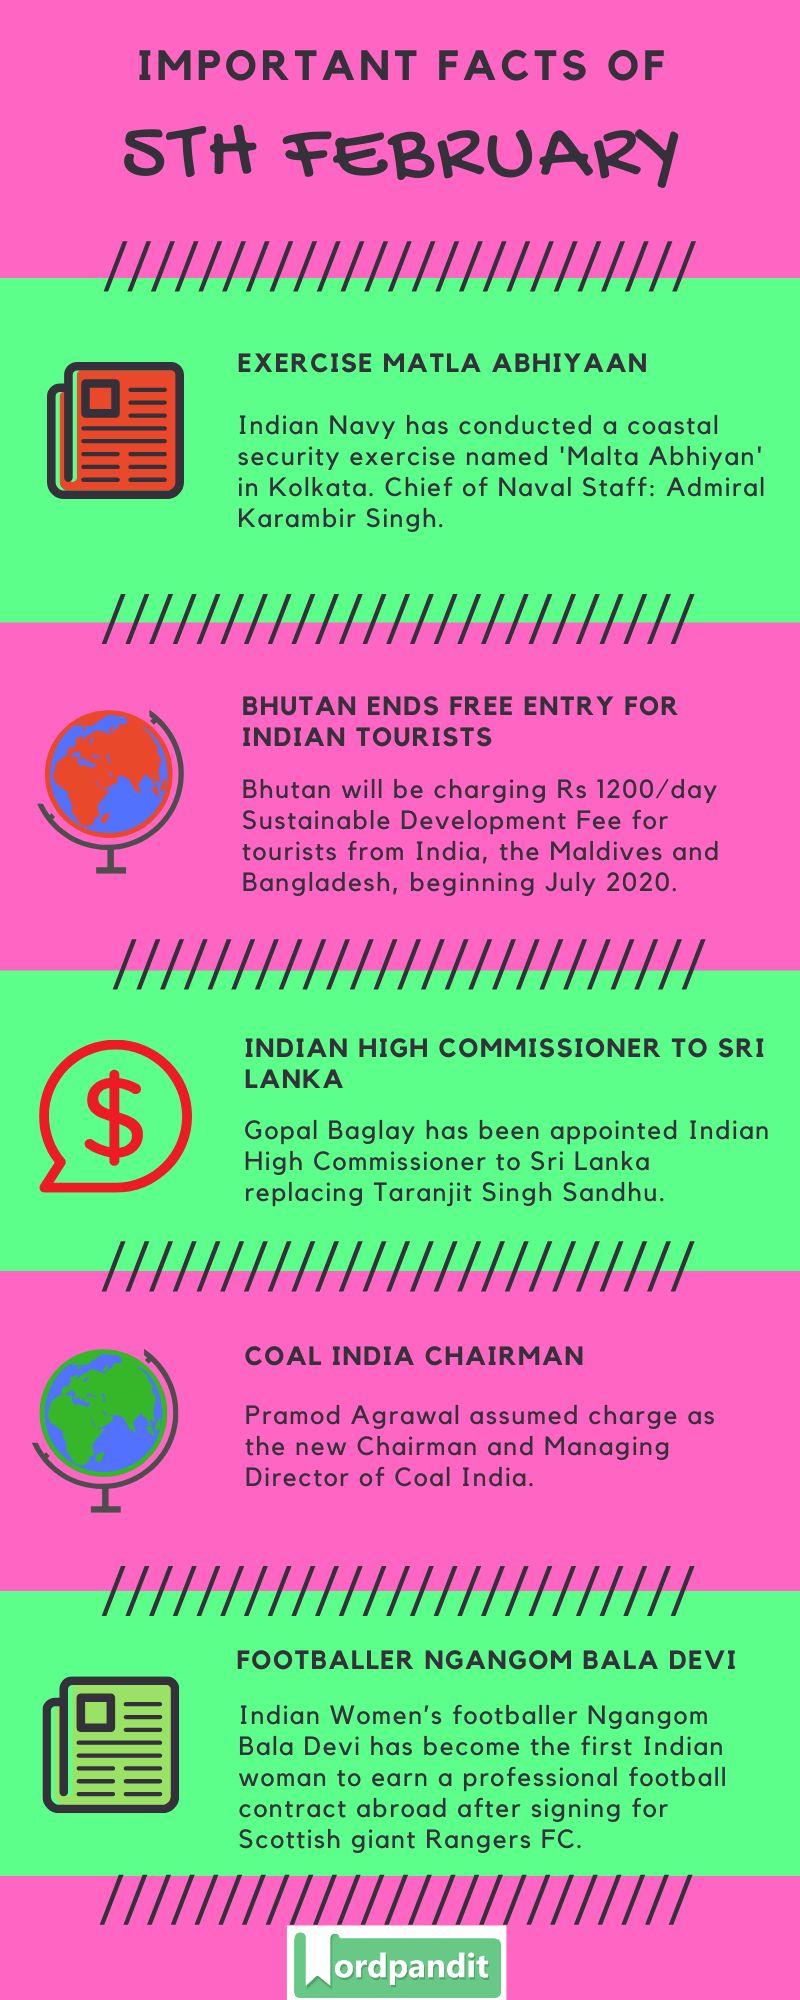 Daily Current Affairs 5 February 2020 Current Affairs Quiz 5 February 2020 Current Affairs Infographic